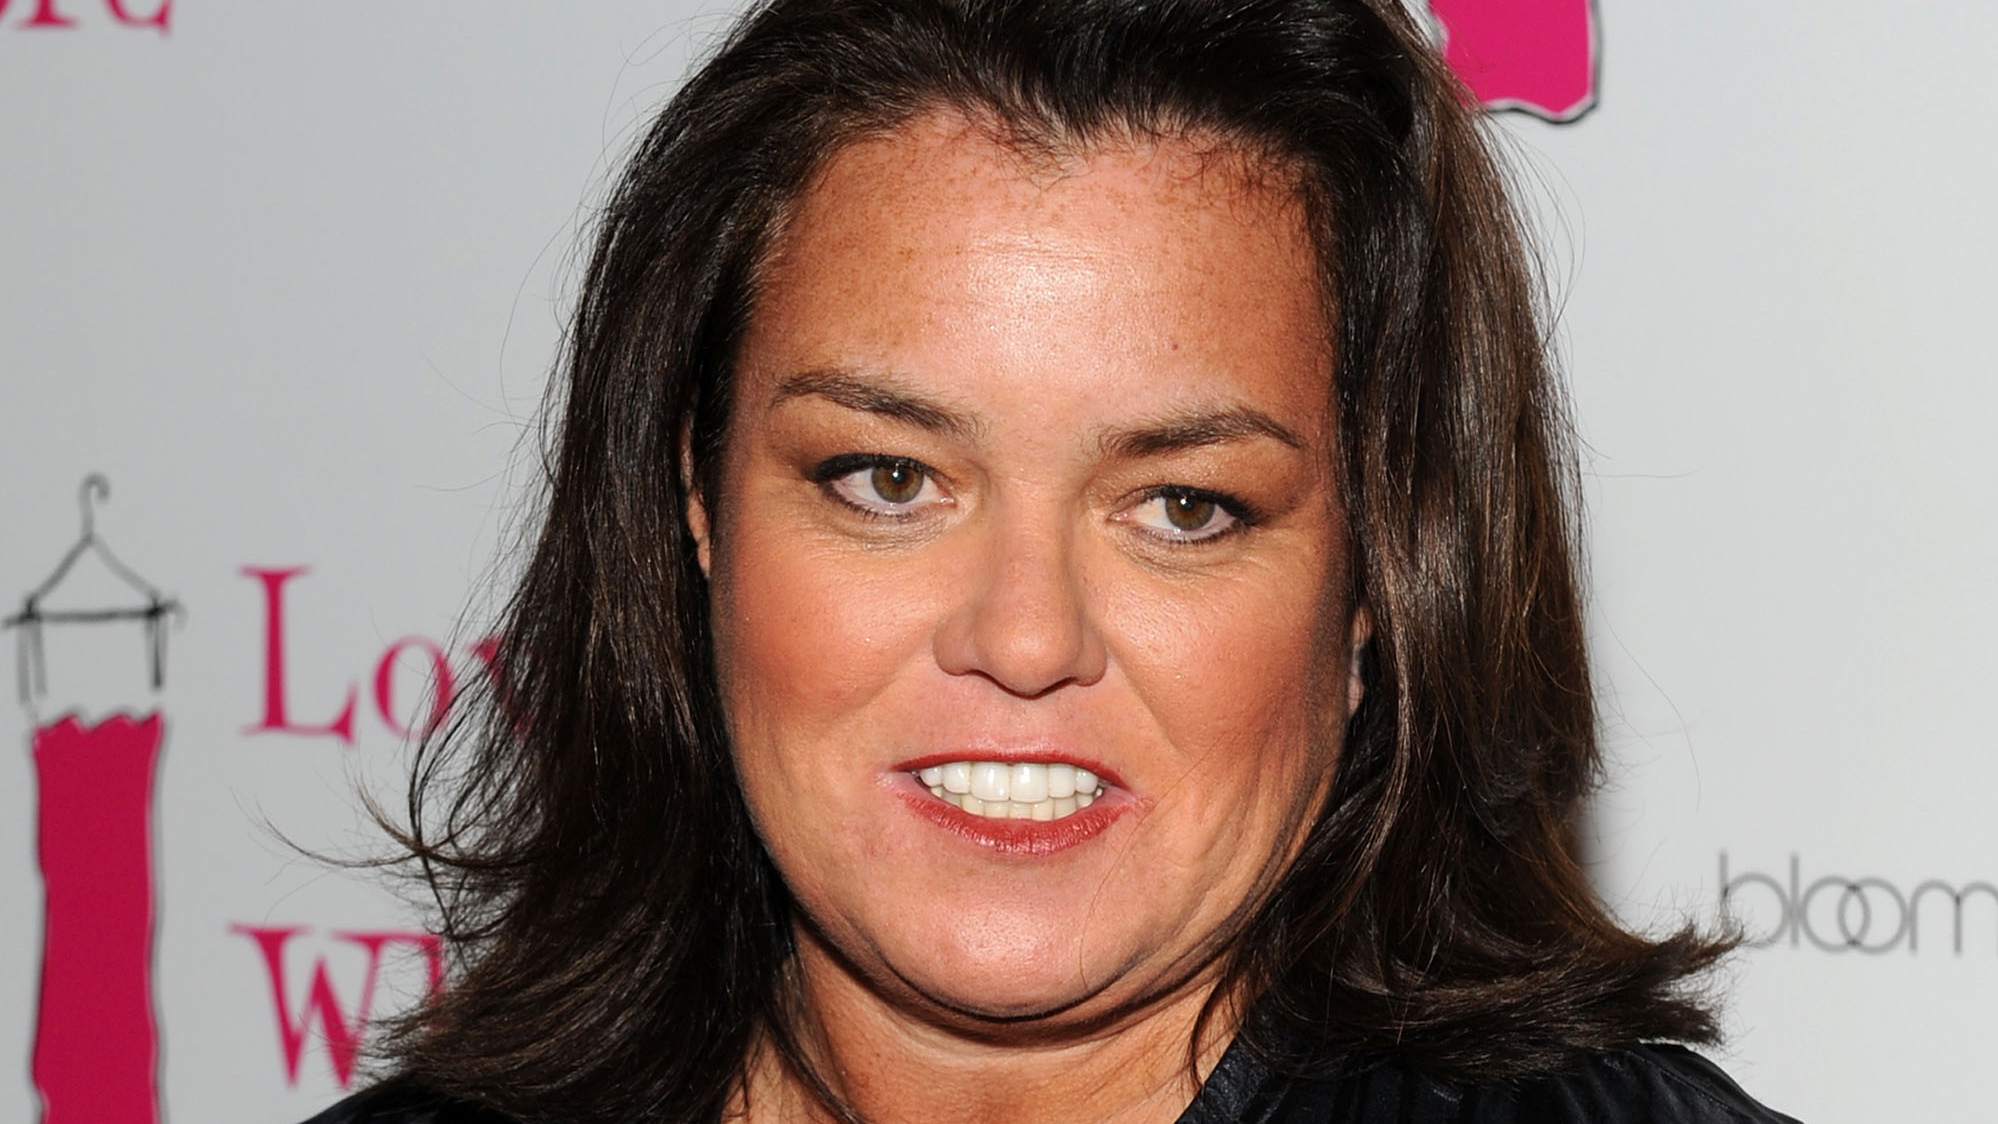 Speaking of Rosie O'Donnell, the comedian revealed today (via poem, ...